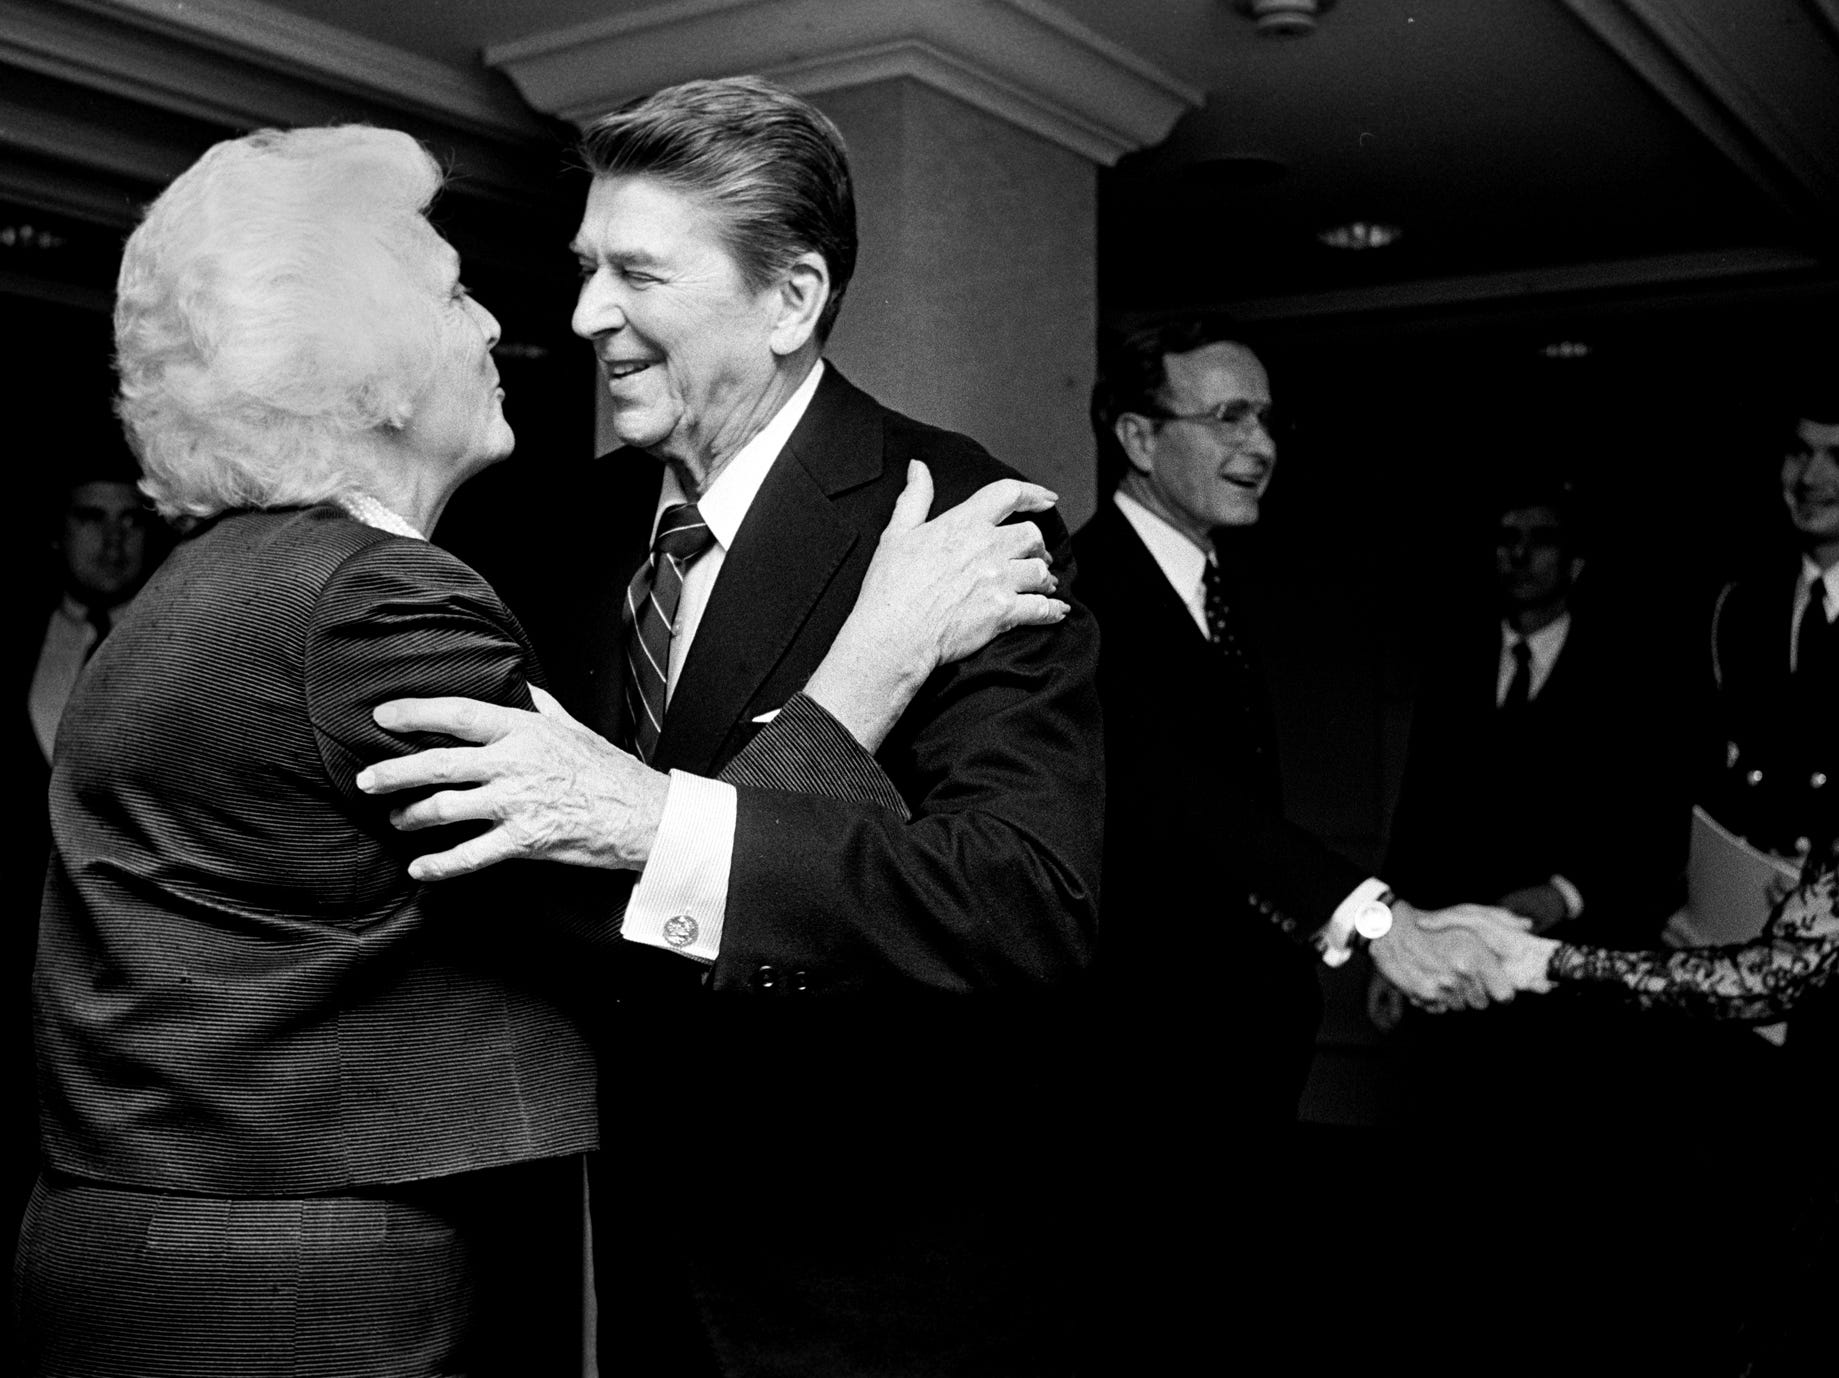 President Reagan talks with Barbara Bush, left, as Vice-President George H. W. Bush shakes hands with Ms. Nancy Reagan at an event in 1985.(By Bill Luster, The Courier-Journal)